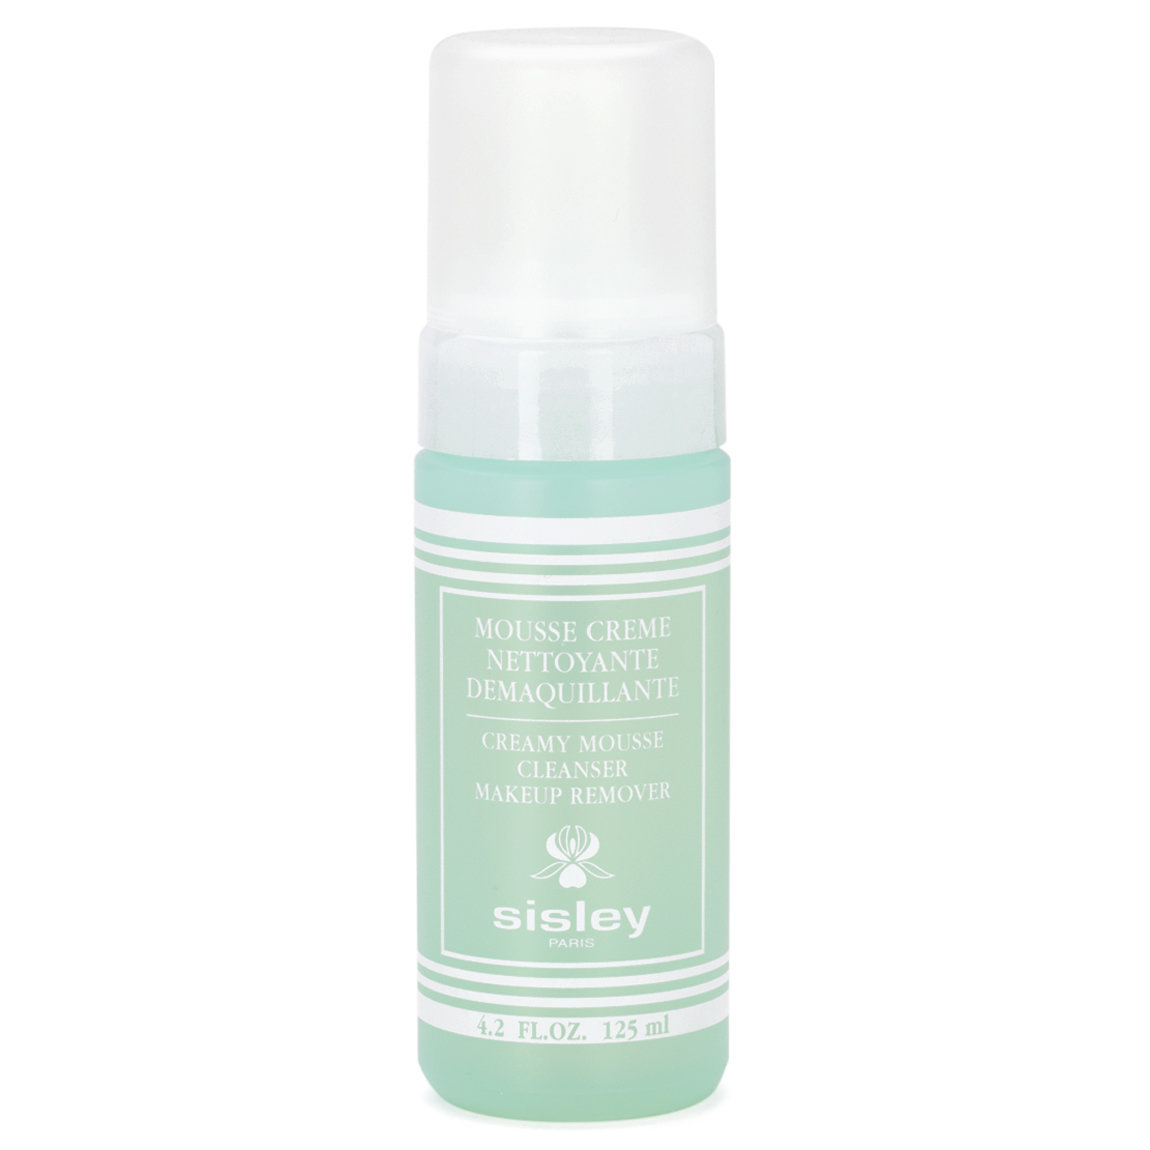 Sisley-Paris Creamy Mousse Cleanser & Makeup Remover product swatch.